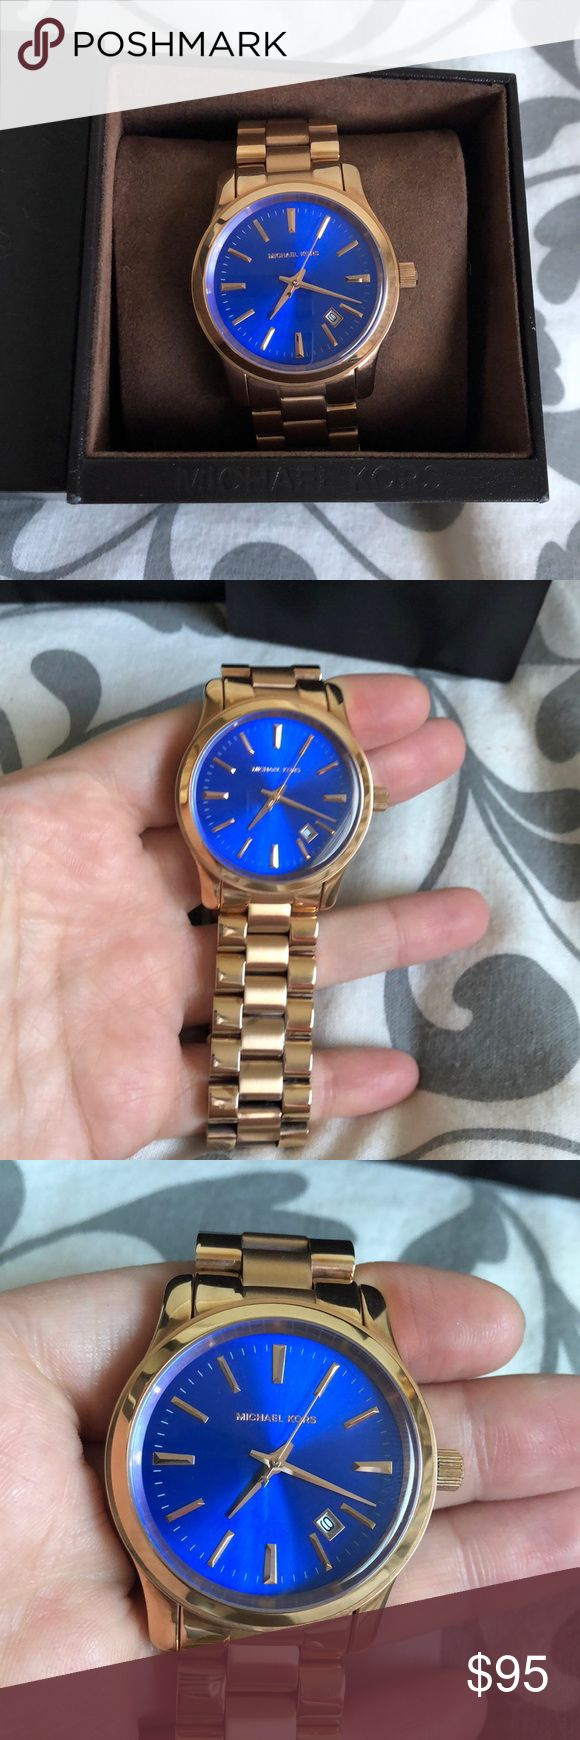 Authentic Michael Kors Women's Watch Authentic Michael Kors Women's Rose Gold and Blue Watch. 100% authentic. Never worn myself, but was bought off of here. In good condition. Comes with the box and tags. No scratches on the face, but some light marks in between the chain link bands, slight discoloration from being stored in the box for a long time. The pillow the watch sits on: the edges of the pillow have fallen off. Box is a little banged up but not bad. Let me know if you have any…